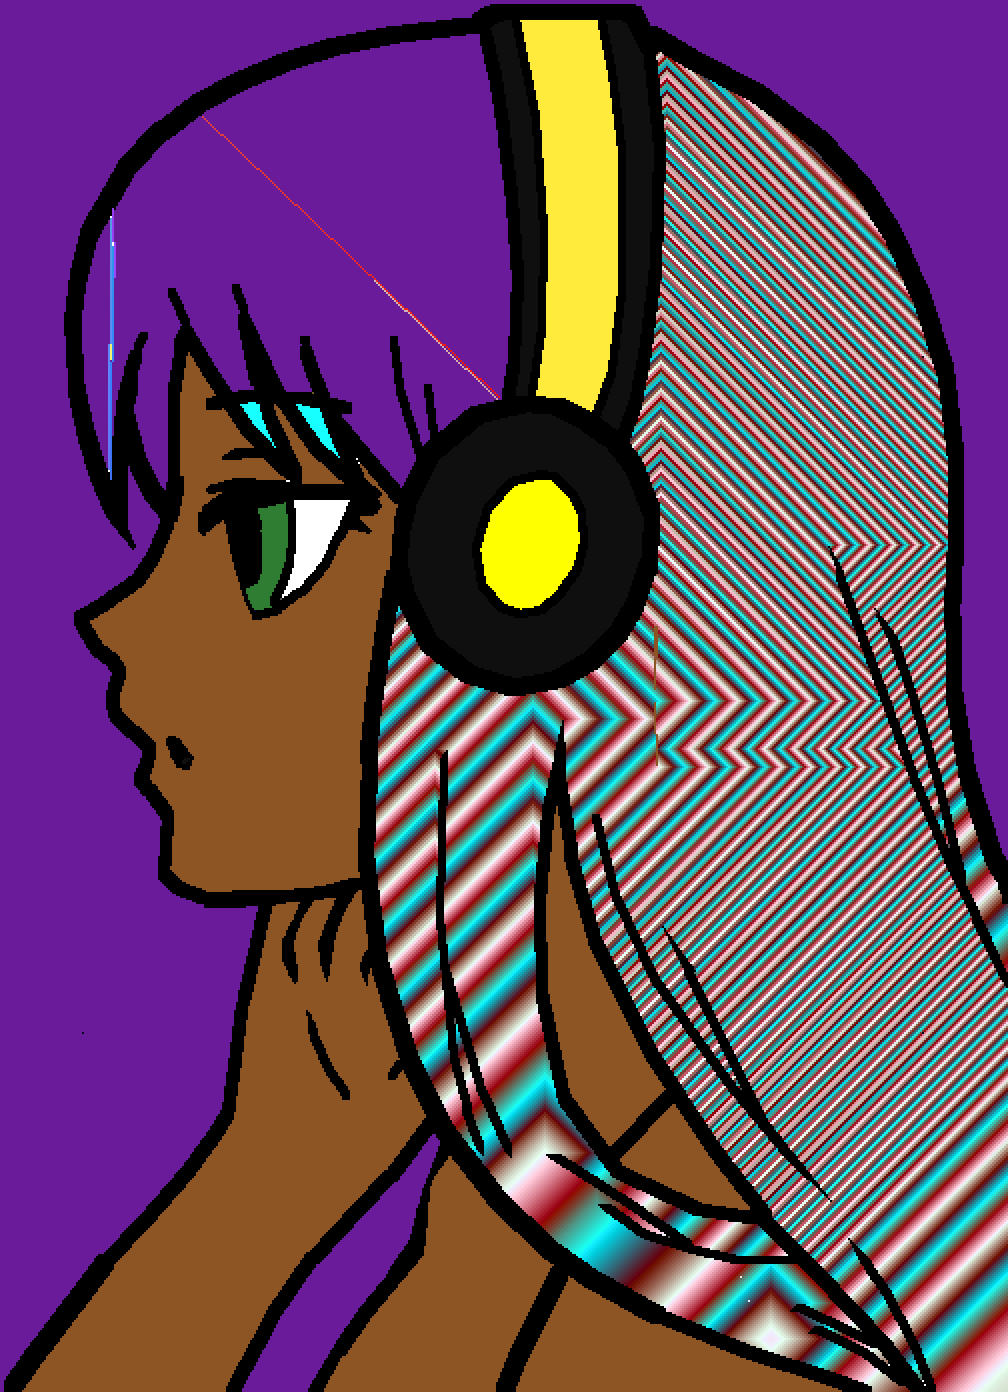 cool colored hair  by urjgnevfskmD